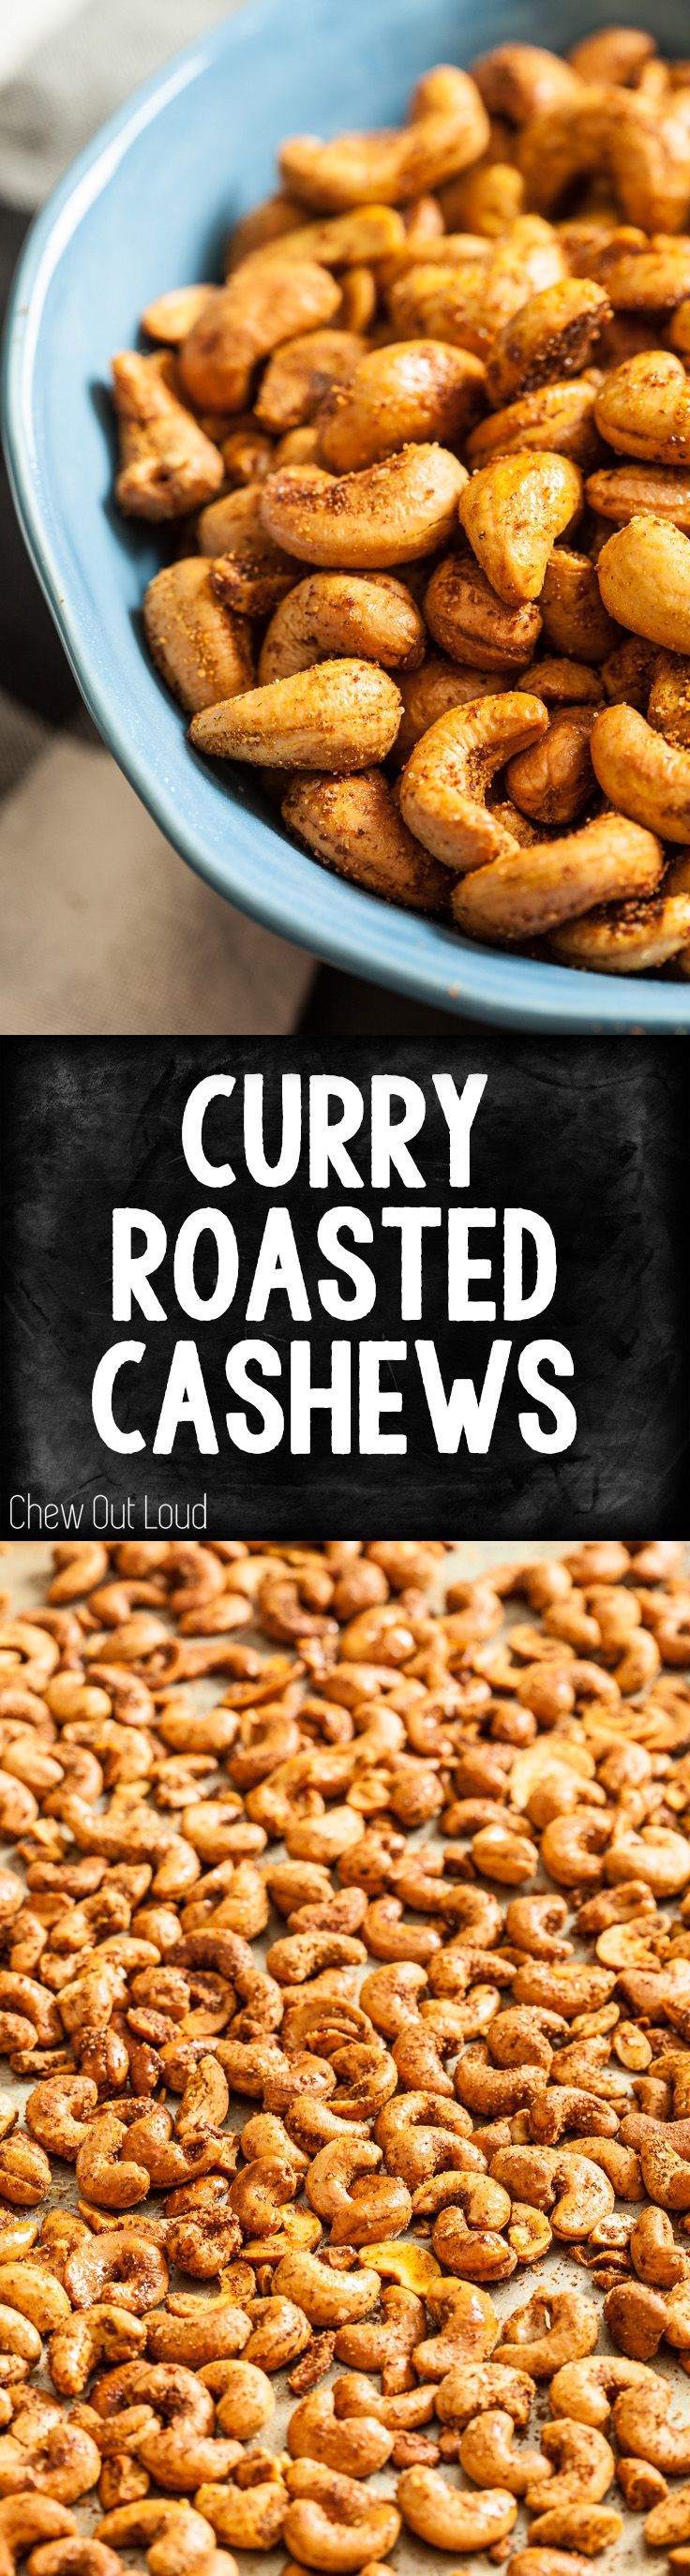 These Curry Roasted Cashews are robust in flavor, slightly spicy, and 200% yummy. Healthy to boot! #appetizers #snacks #healthy